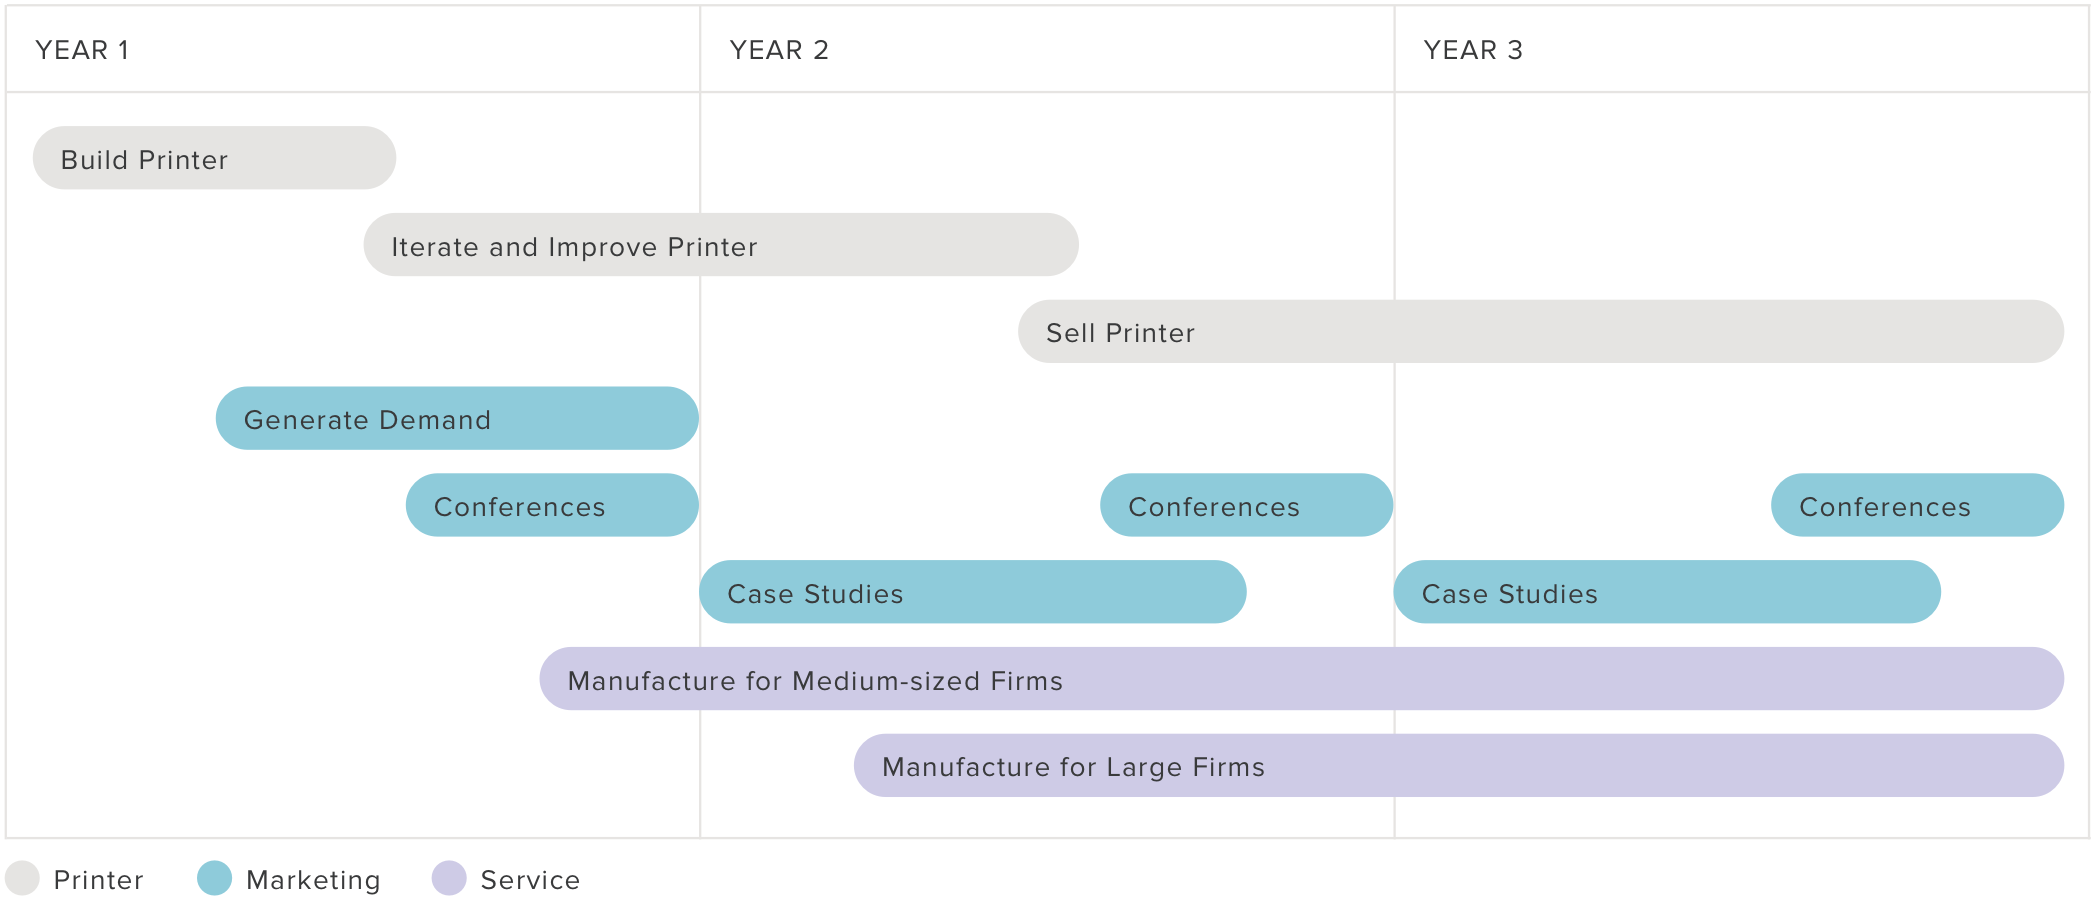 3-Year Timeline of Printer,Marketing, and Service Plans